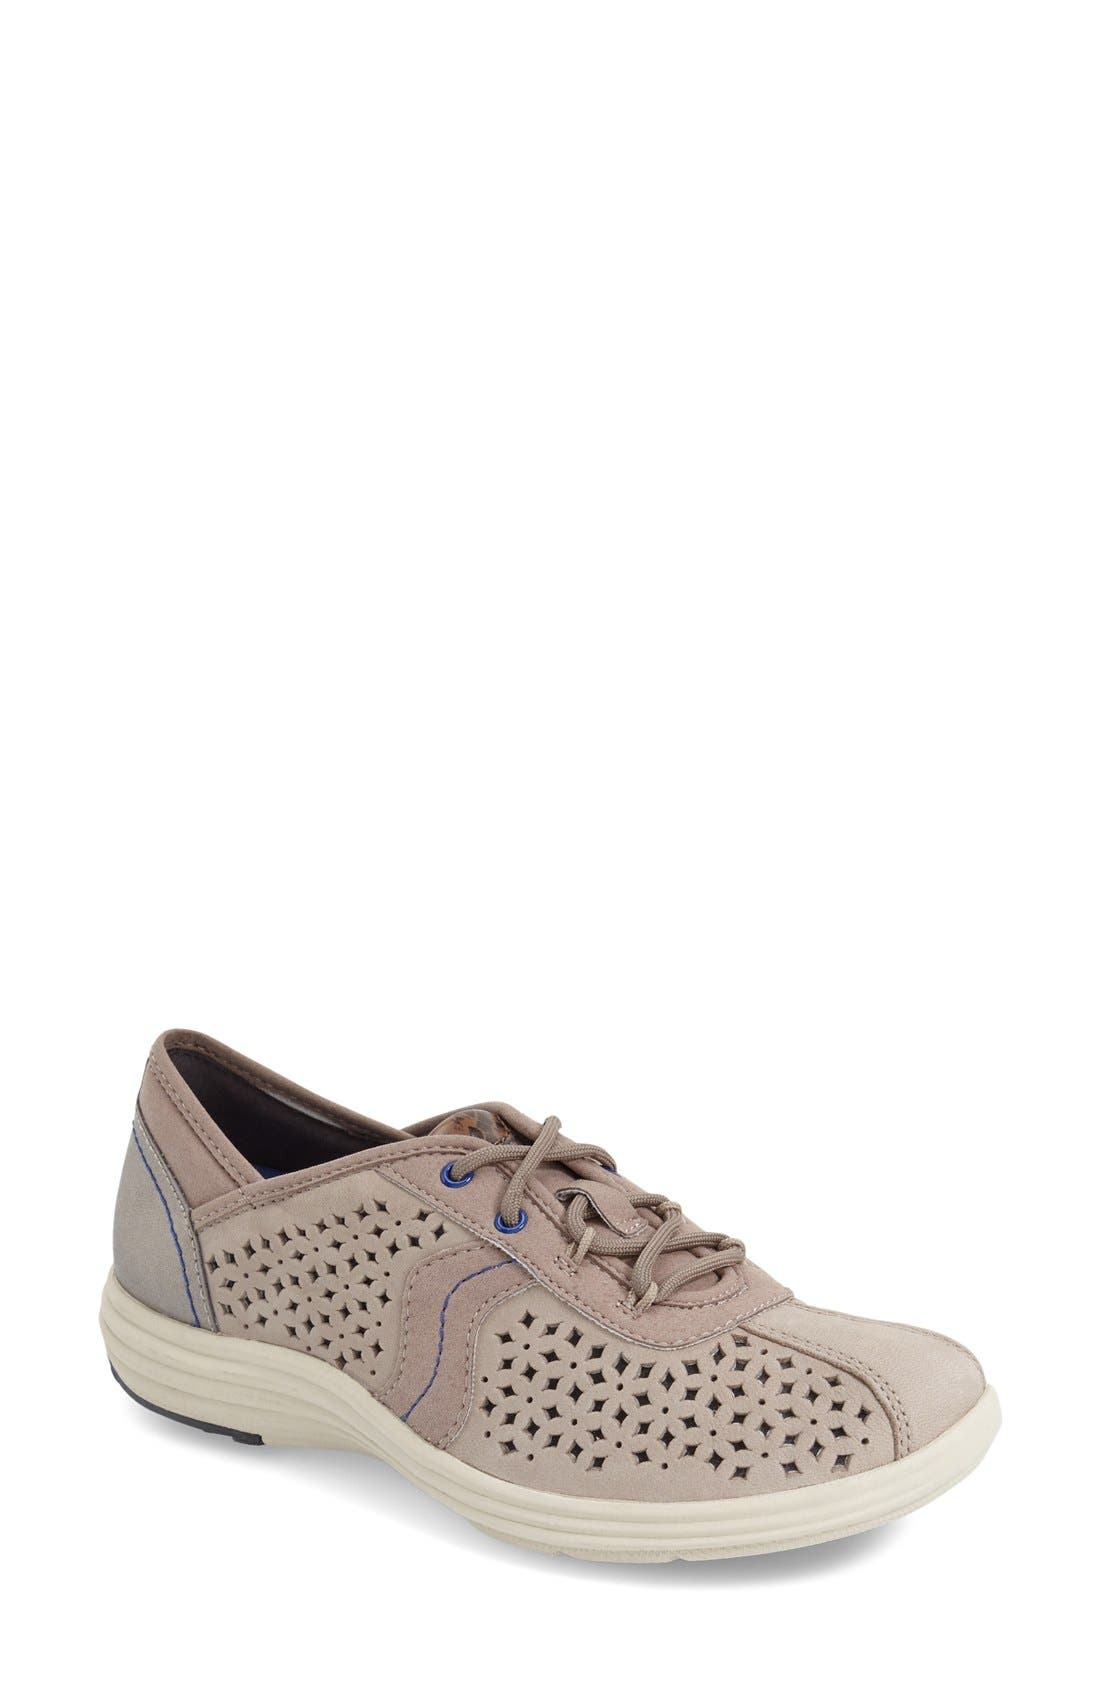 ARAVON 'Betty' Sneaker, Main, color, GREY LEATHER